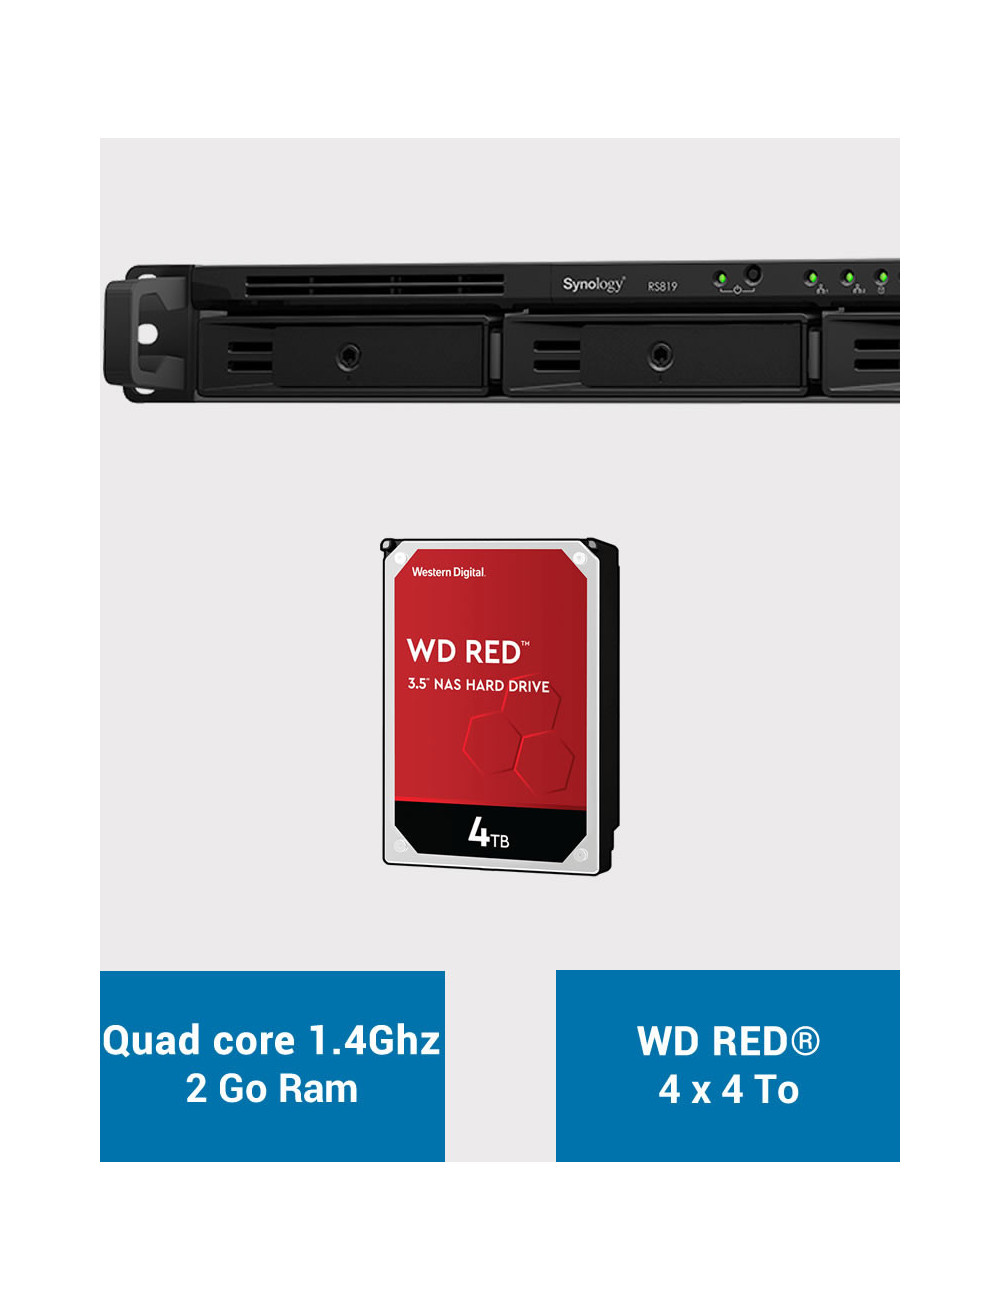 Synology RS819 NAS Server WD RED 16TB (4x4TB)